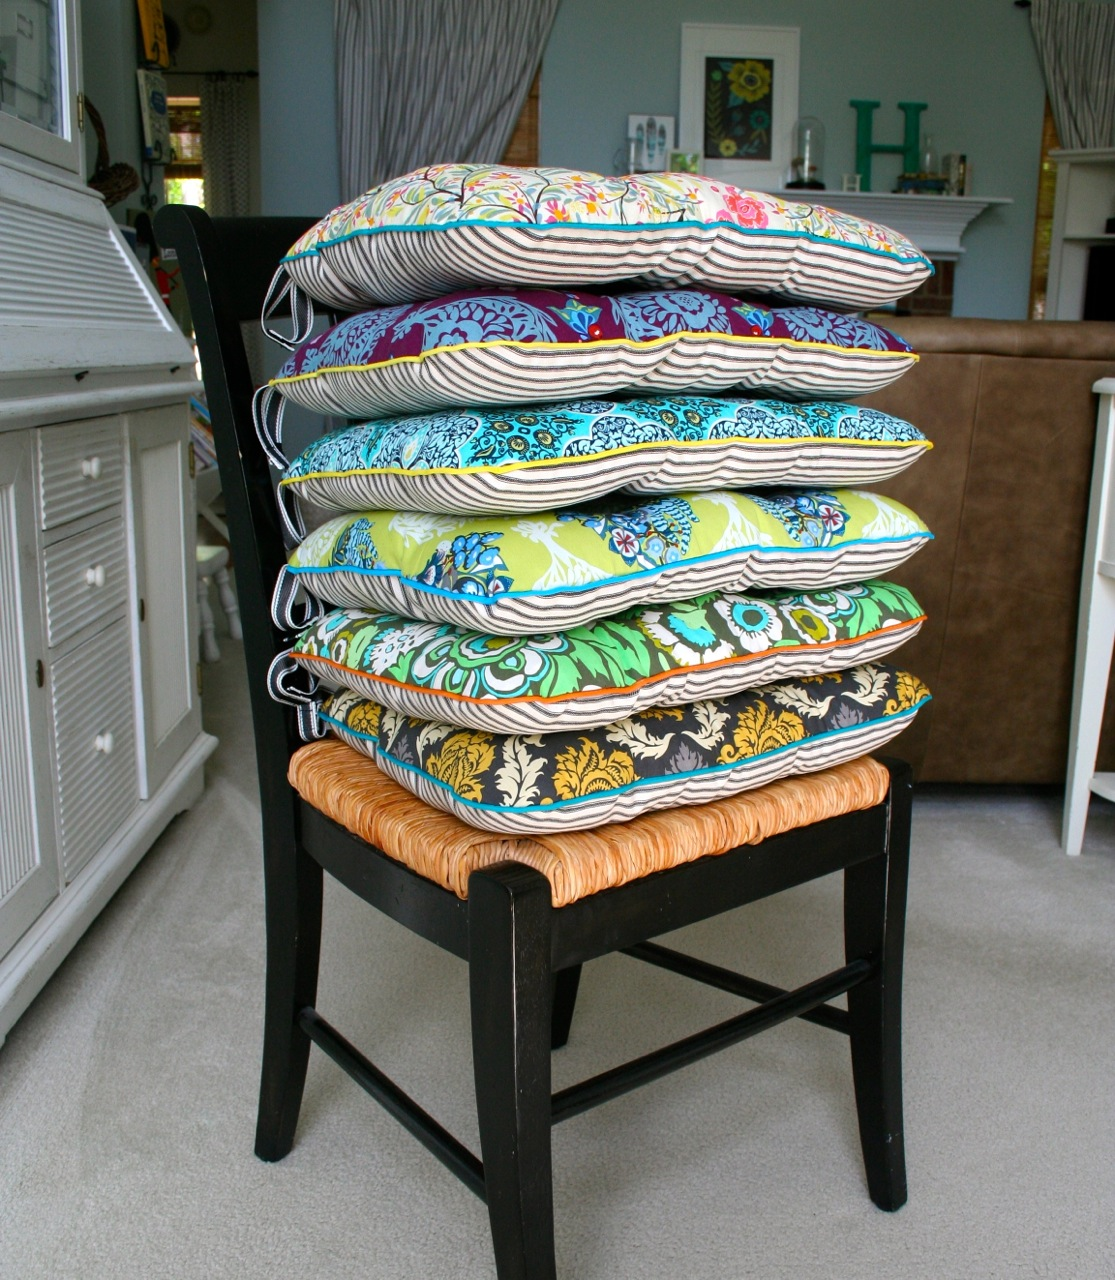 sewing patterns for chair cushions rockin roller desk review mmmcrafts six only took ten years now you make some